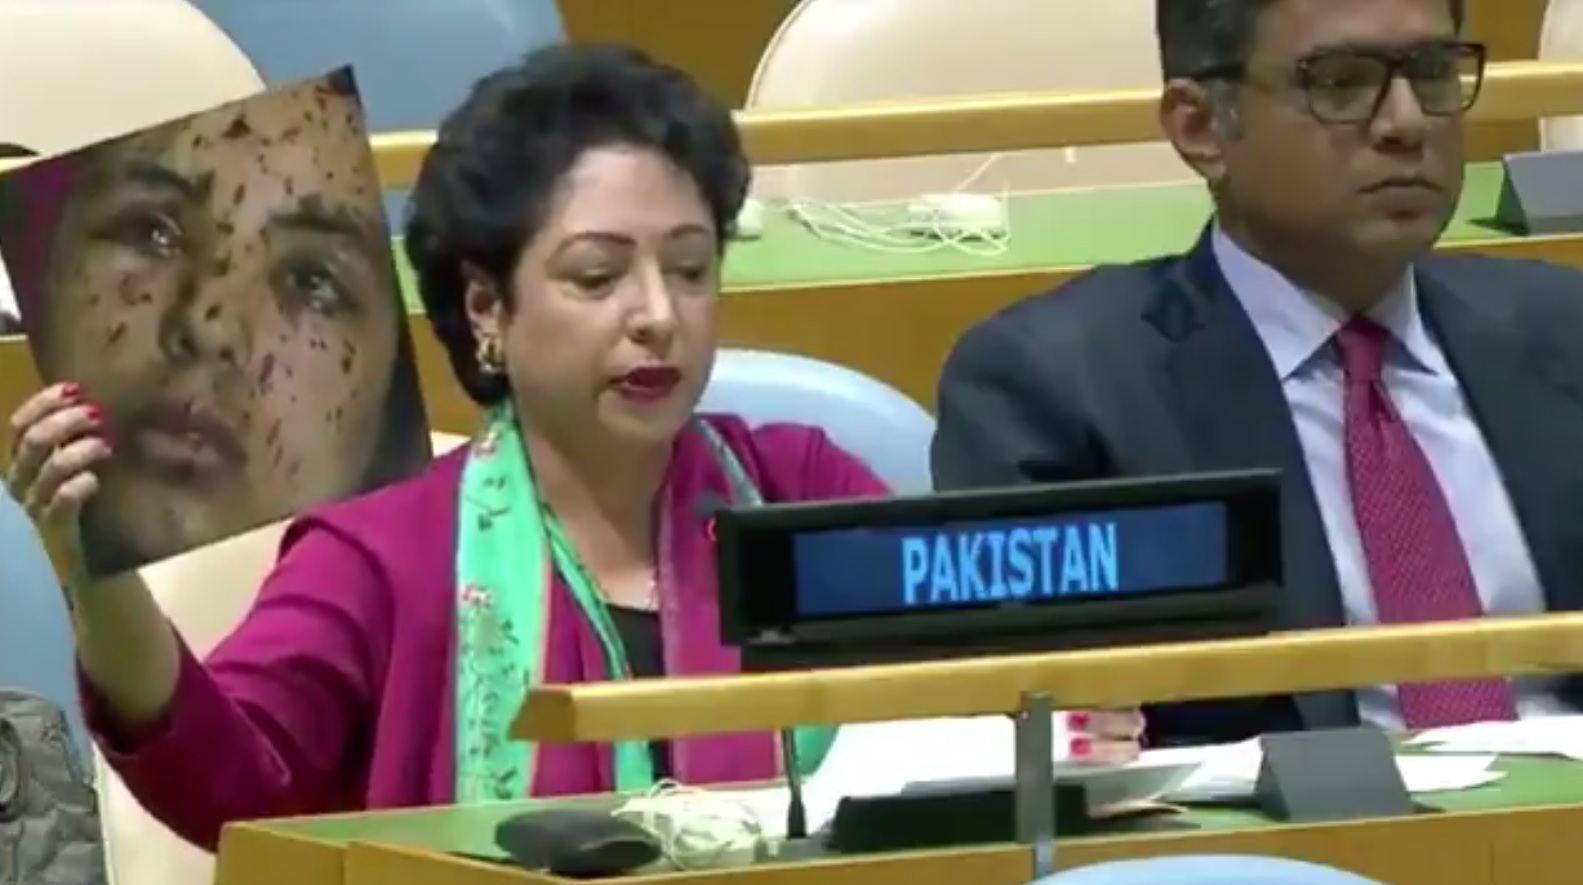 pakistan uses image of gaza girl to attack india at the un the